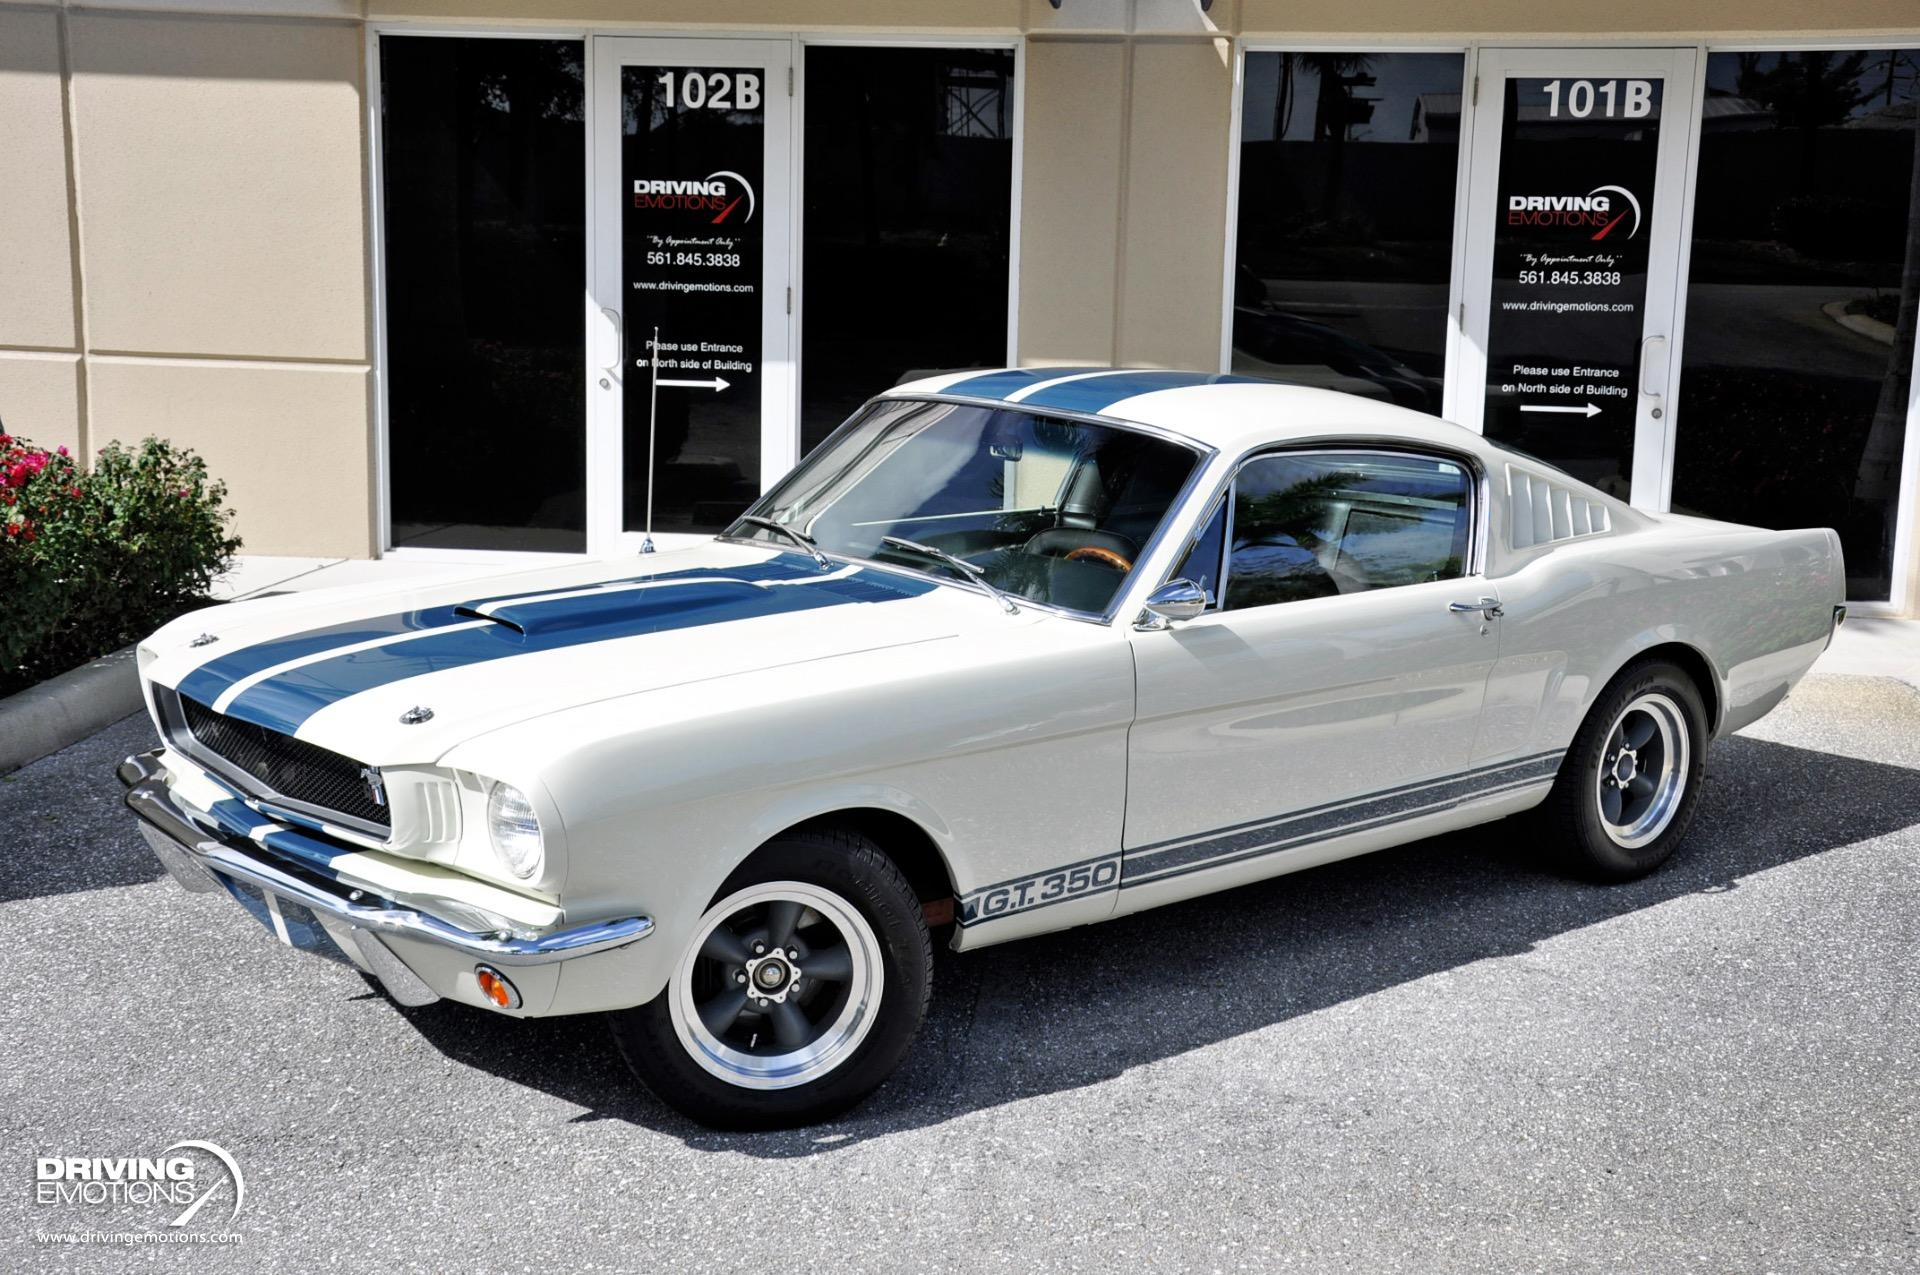 Used 1965 Ford Mustang GT350 Tribute Clone GT350 Tribute | Lake Park, FL